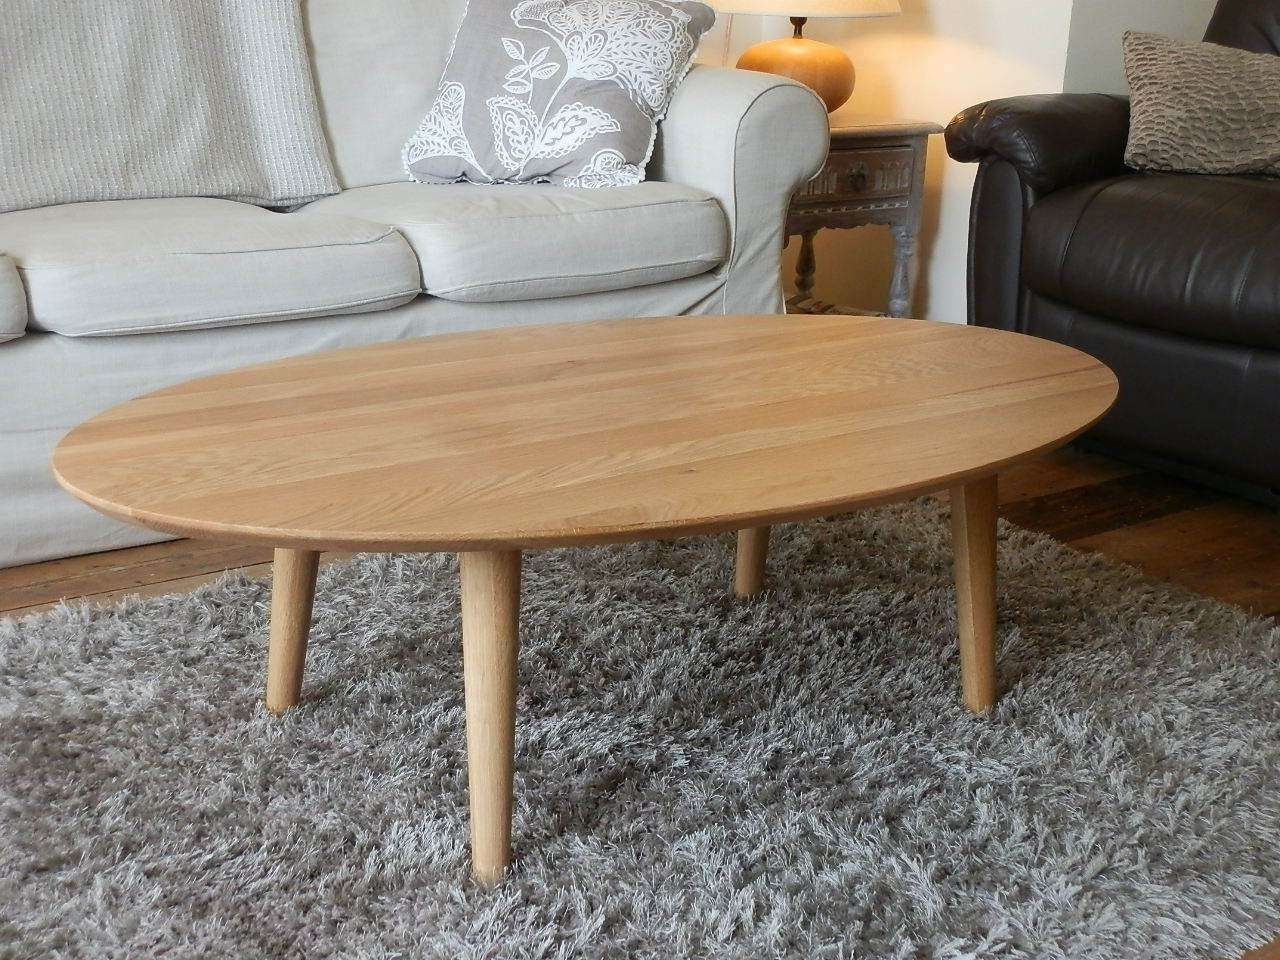 Oak Oval Coffee Table White — The Home Redesign : What Kind Of For Best And Newest White Oval Coffee Tables (View 15 of 20)